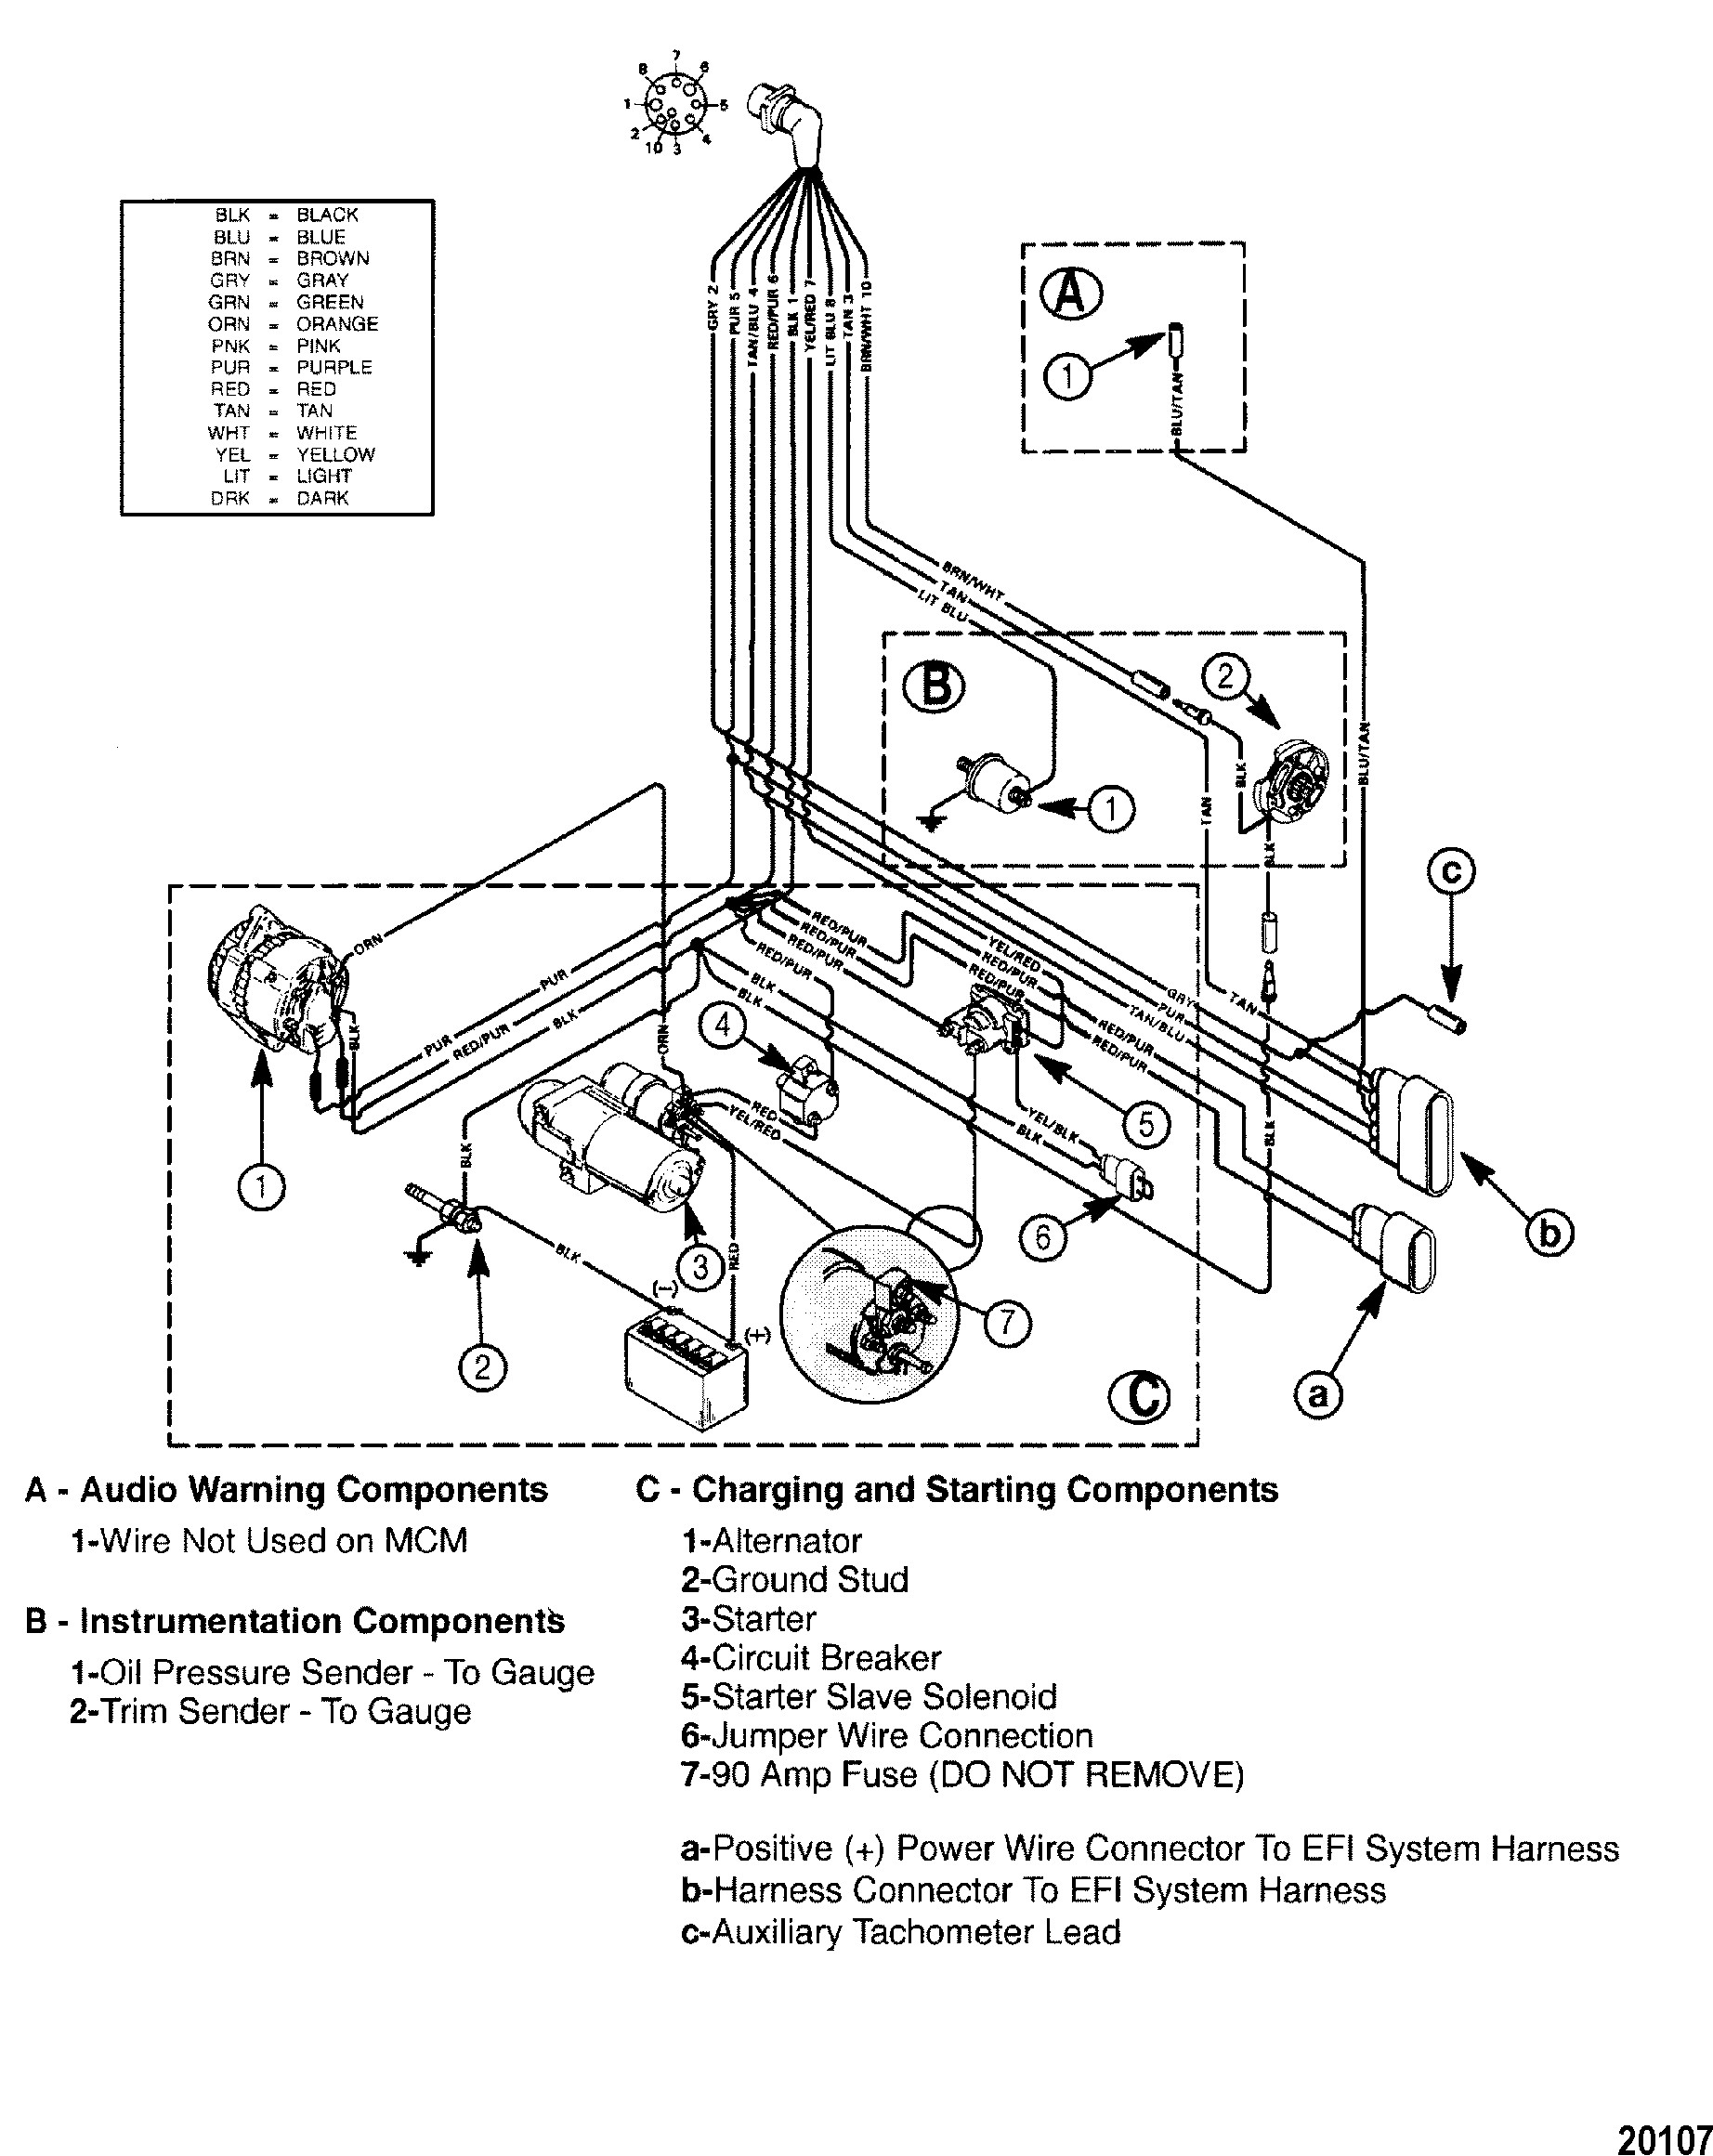 2003 Jaguar X Type V6 Engine Diagram. Jaguar. Auto Wiring